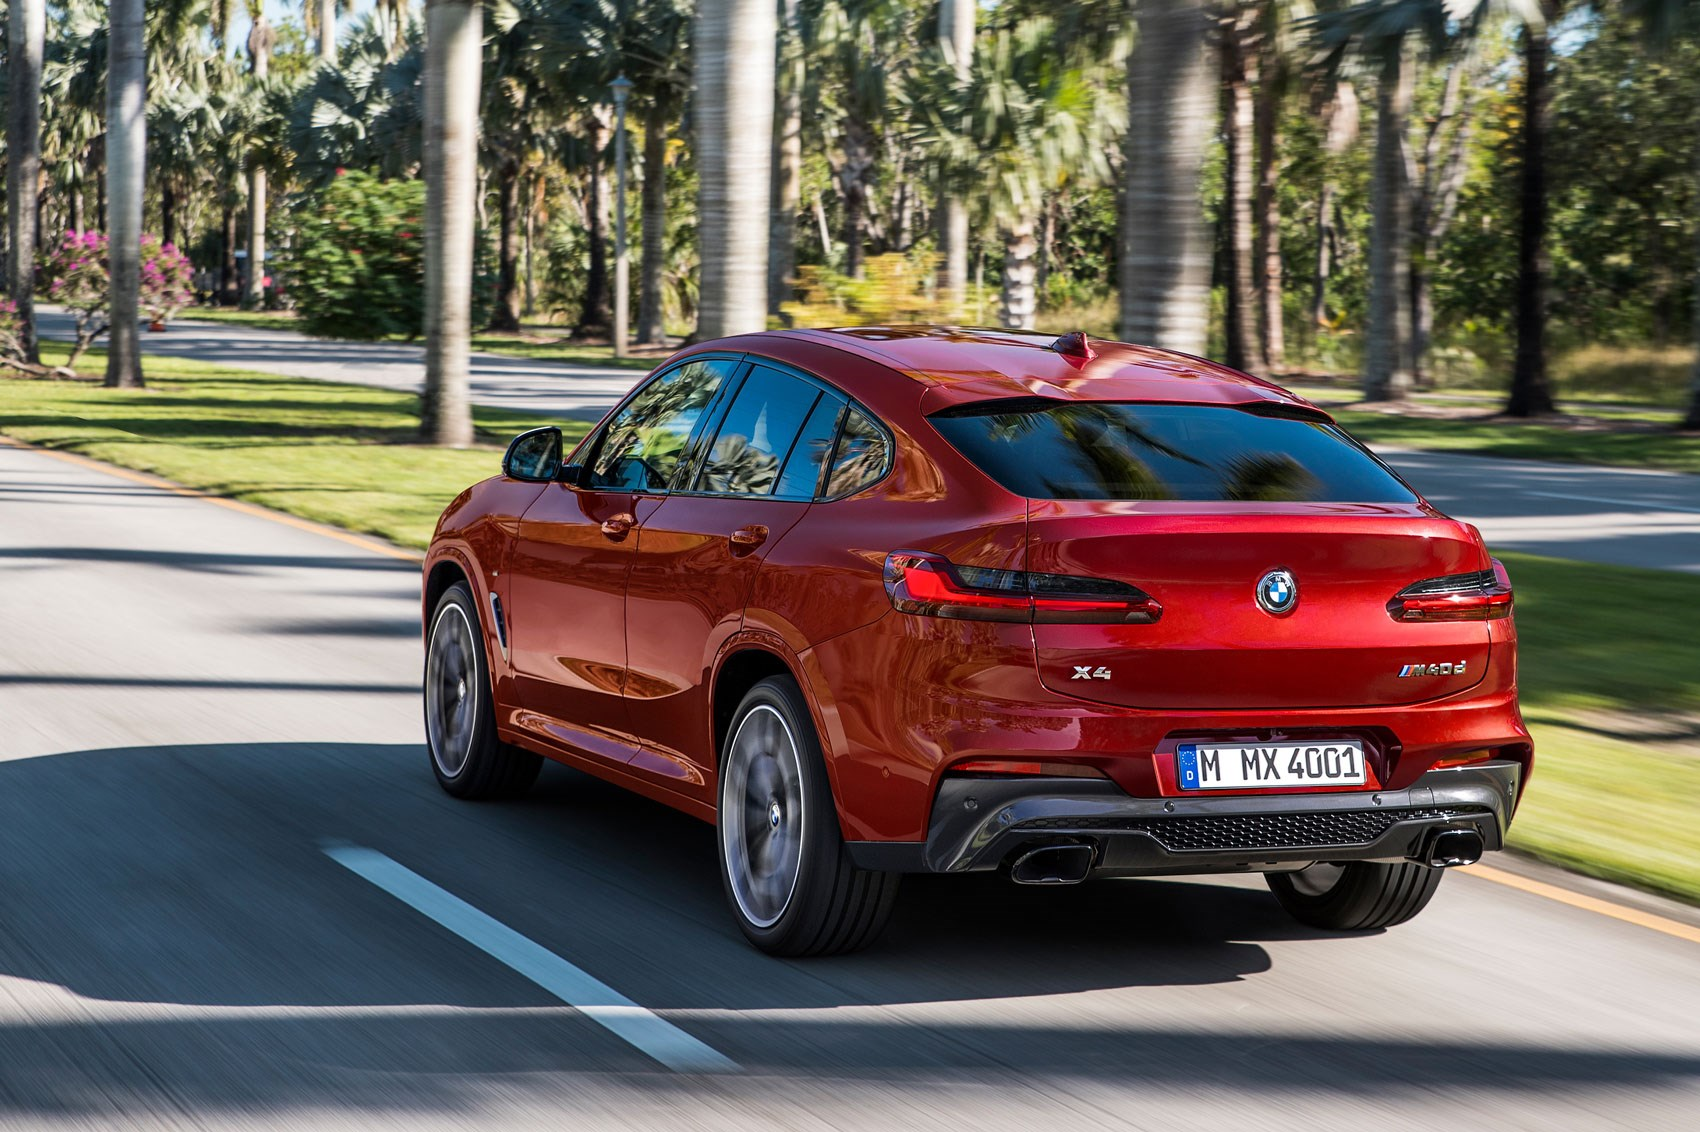 Generation X Hot Bmw X4 M40i Coming To New York Show